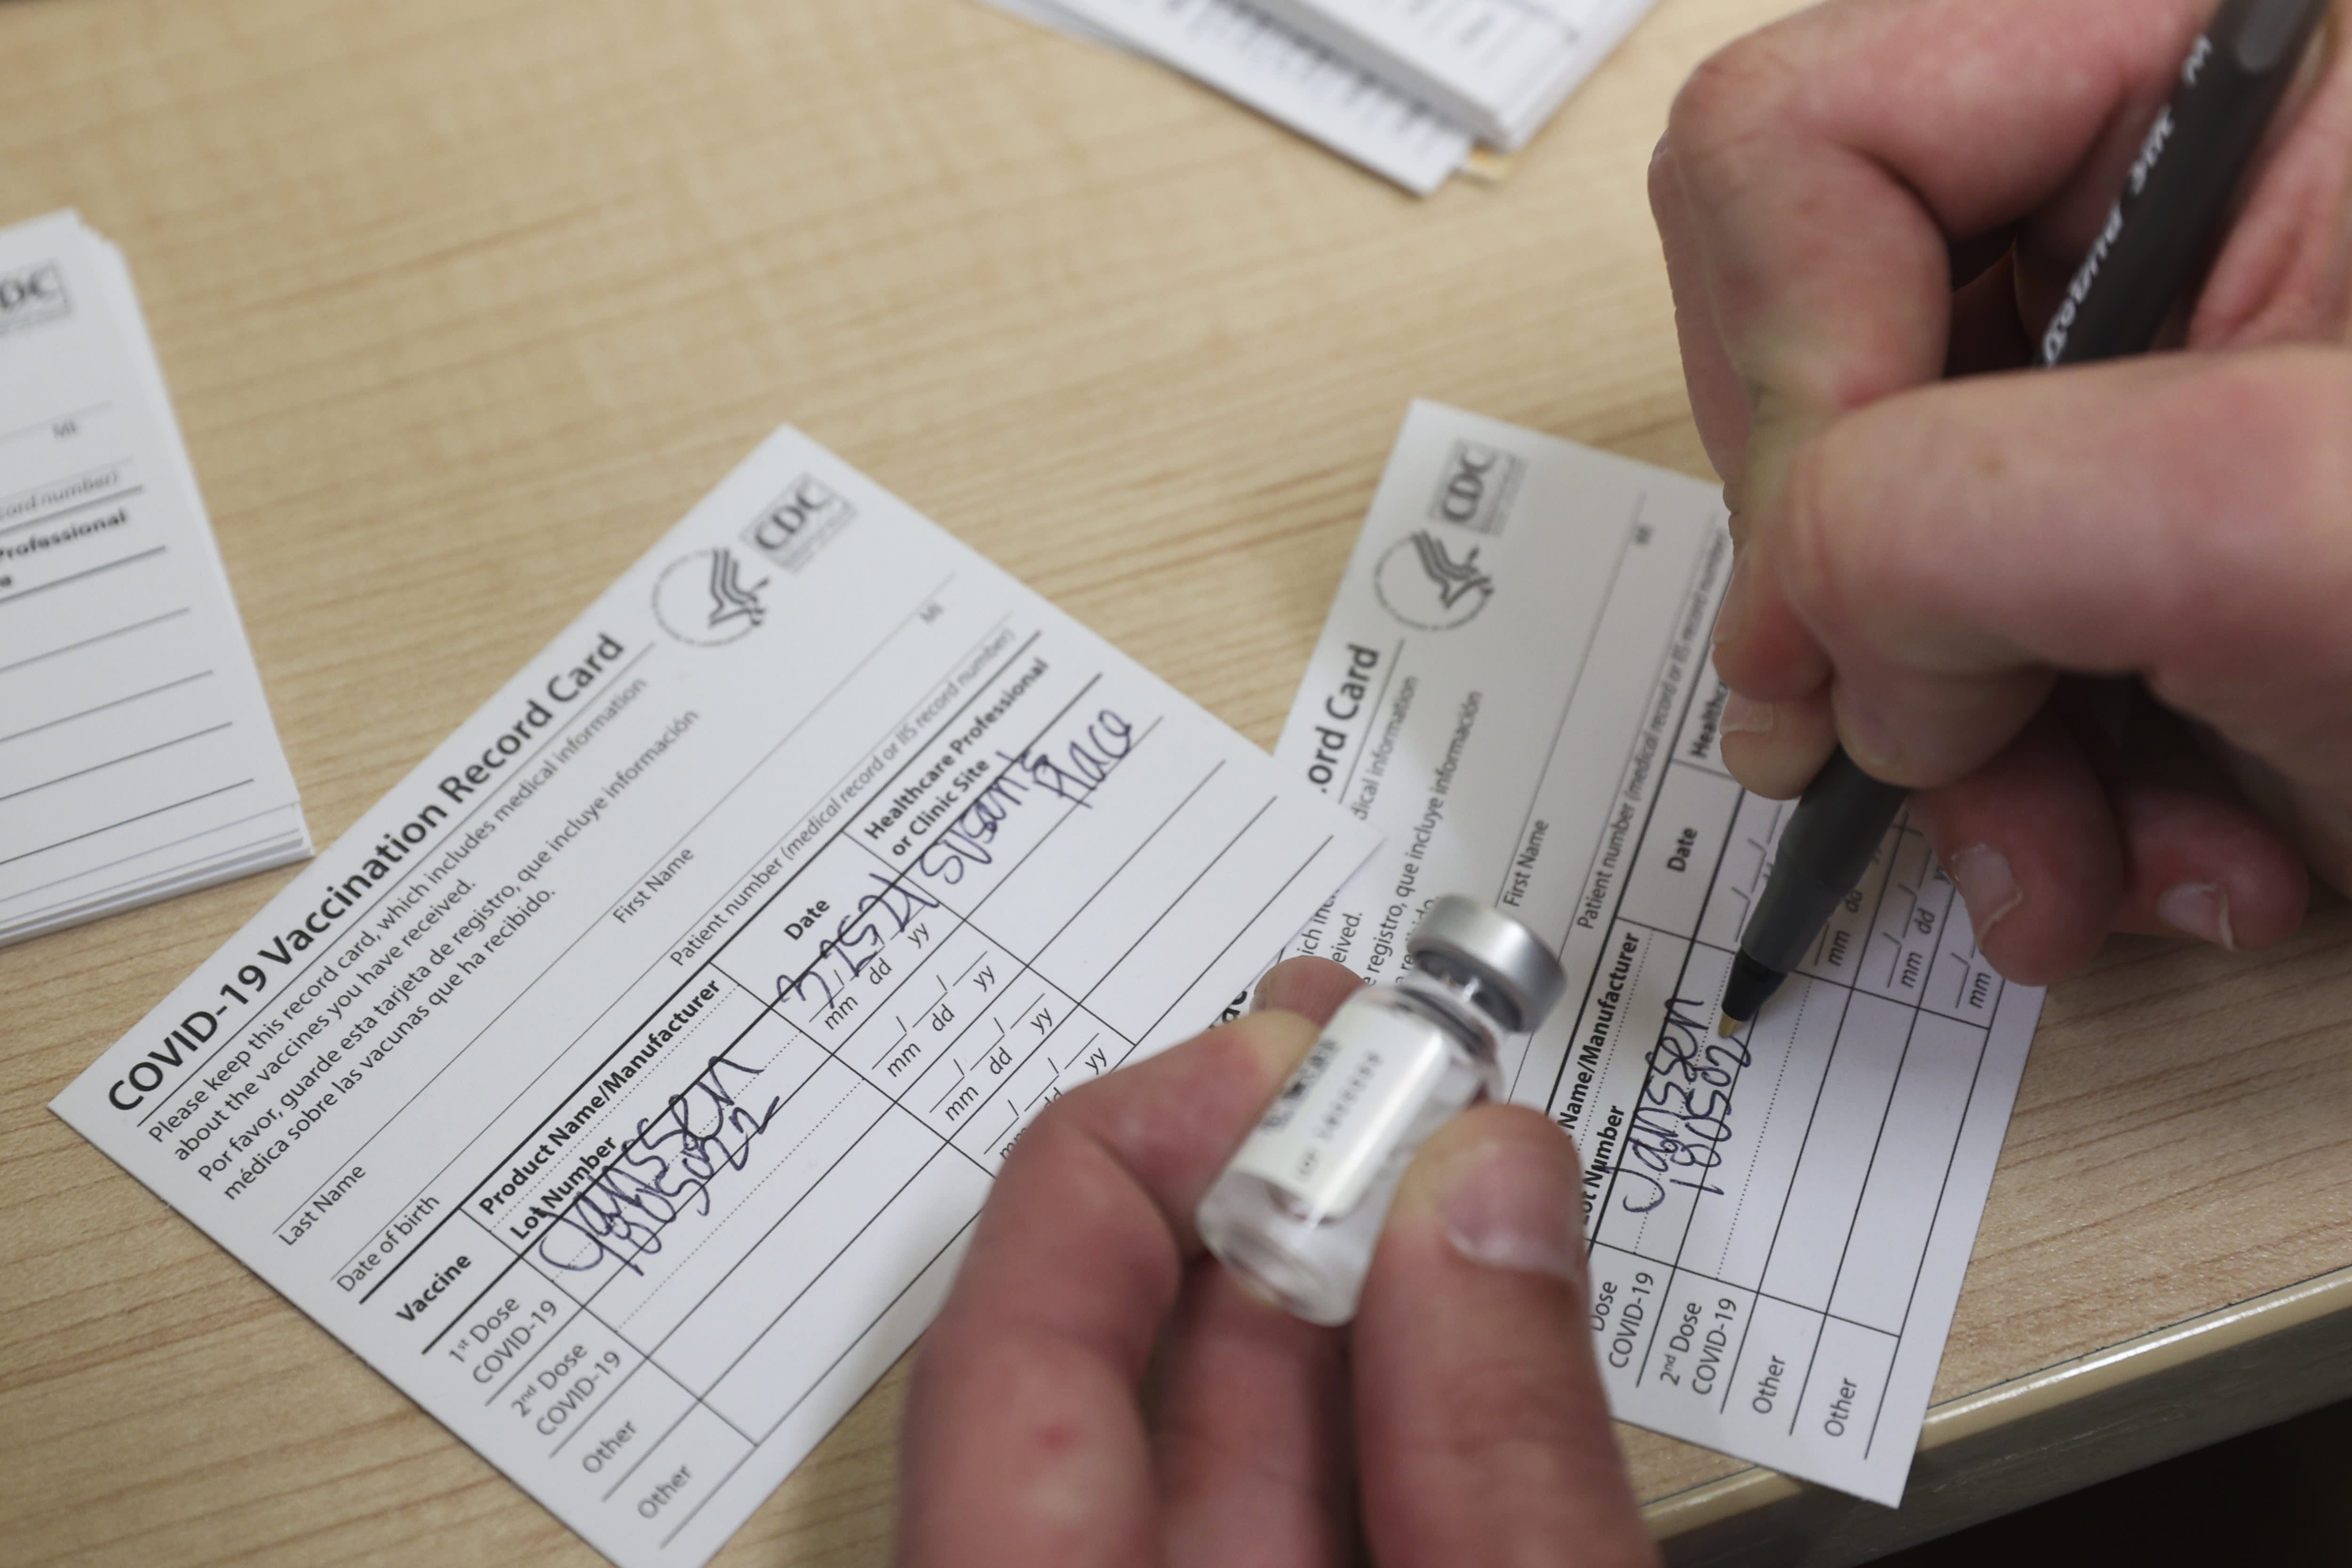 Most U.S. companies will require proof of Covid vaccination from employees, survey finds